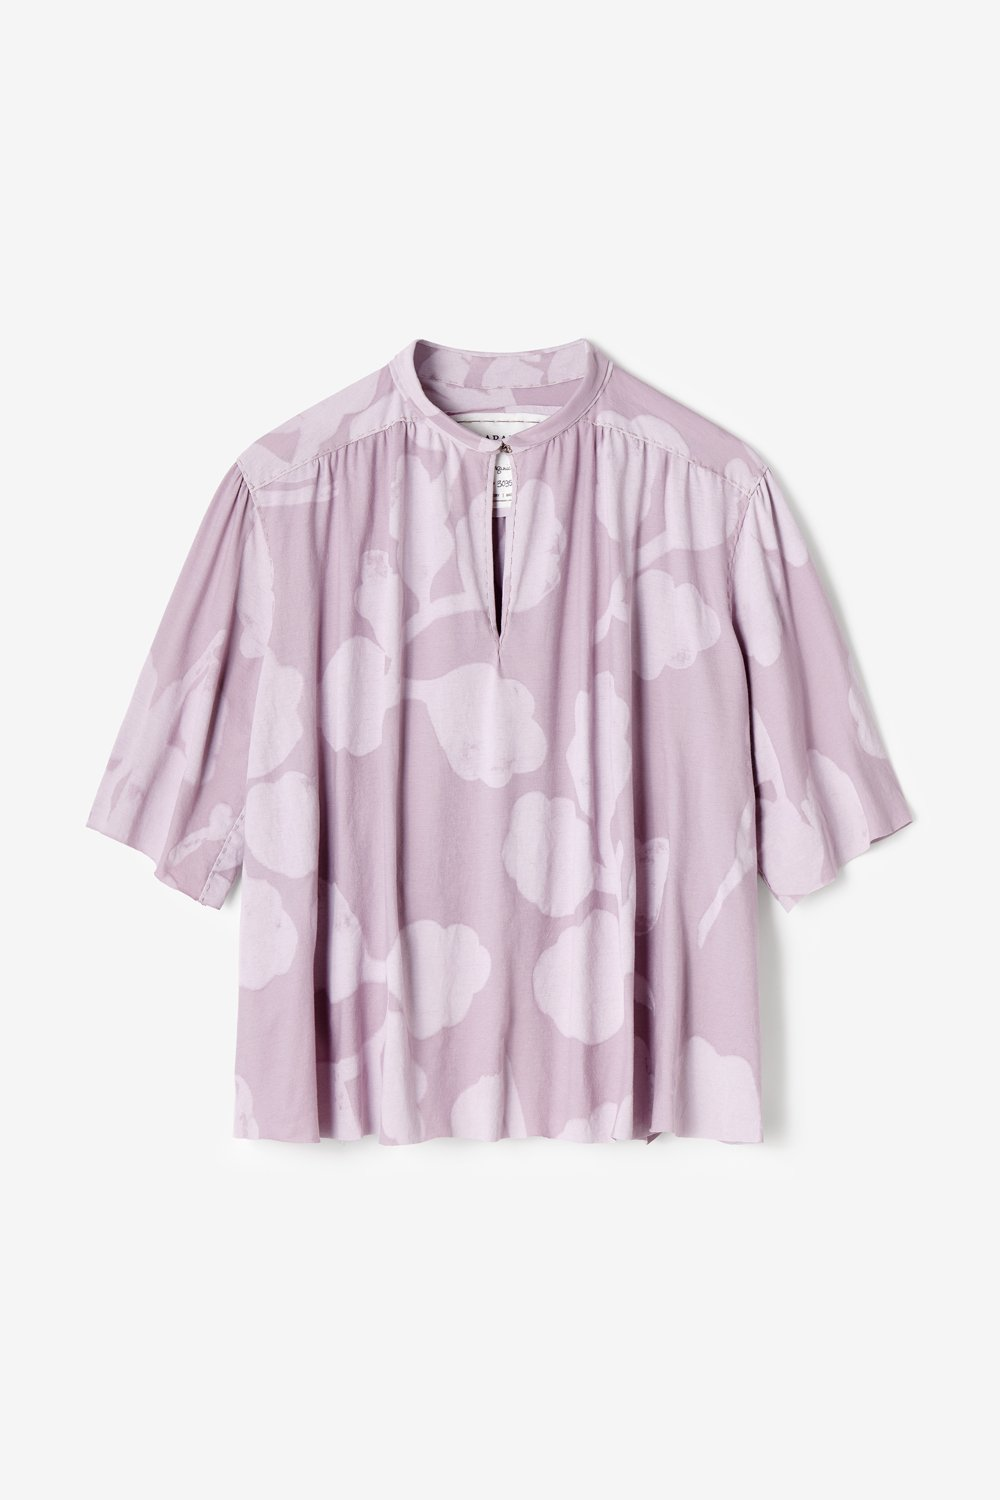 Alabama Chanin Organic Cotton Ines Top Hand-Painted Leaves Design in Lilac